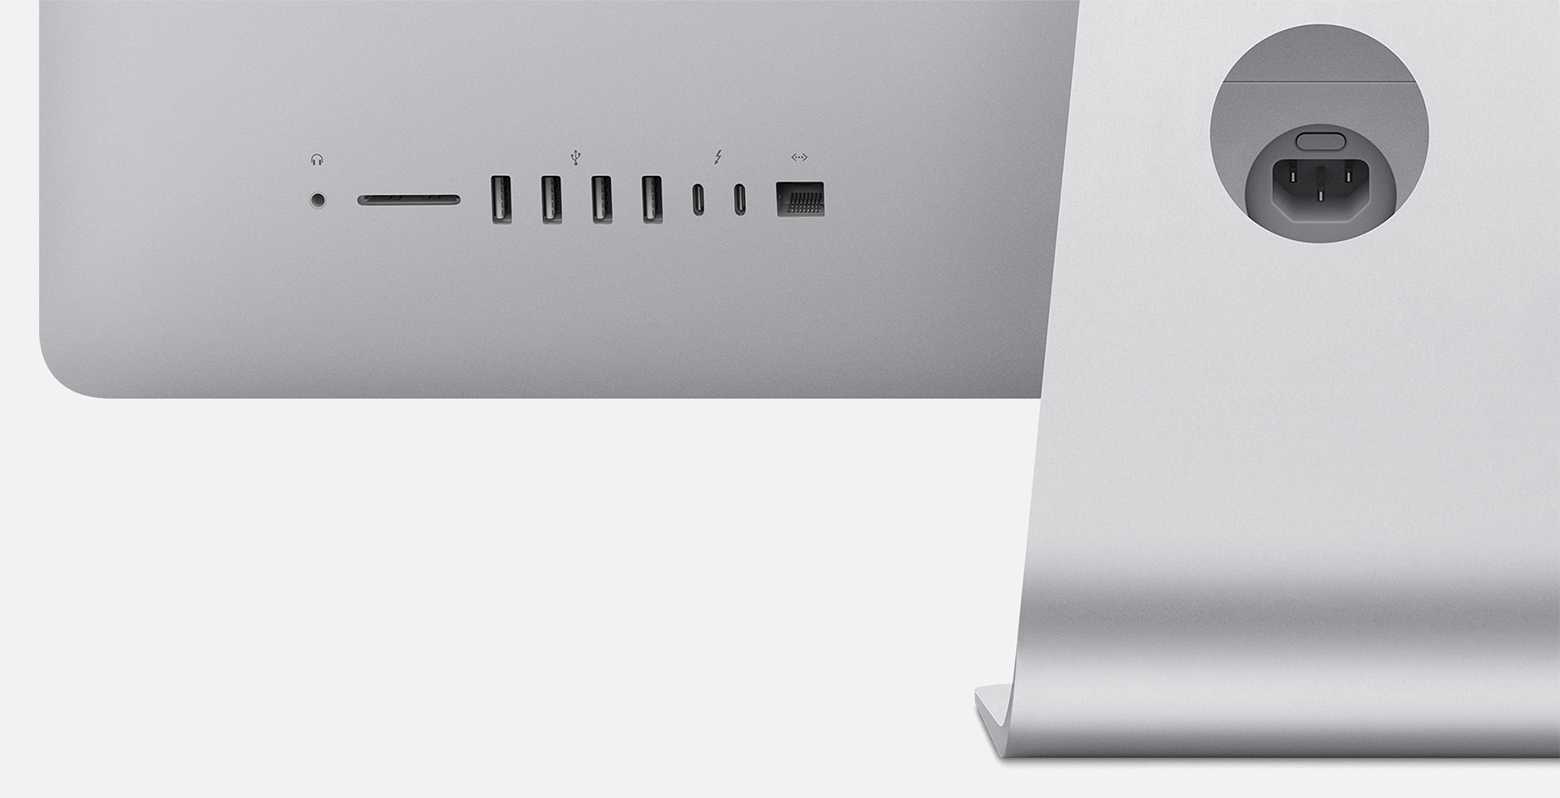 hight resolution of imac 21 5 inch 2017 has audio in sd card slot four usb a two thunderbolt 3 usb c and ethernet